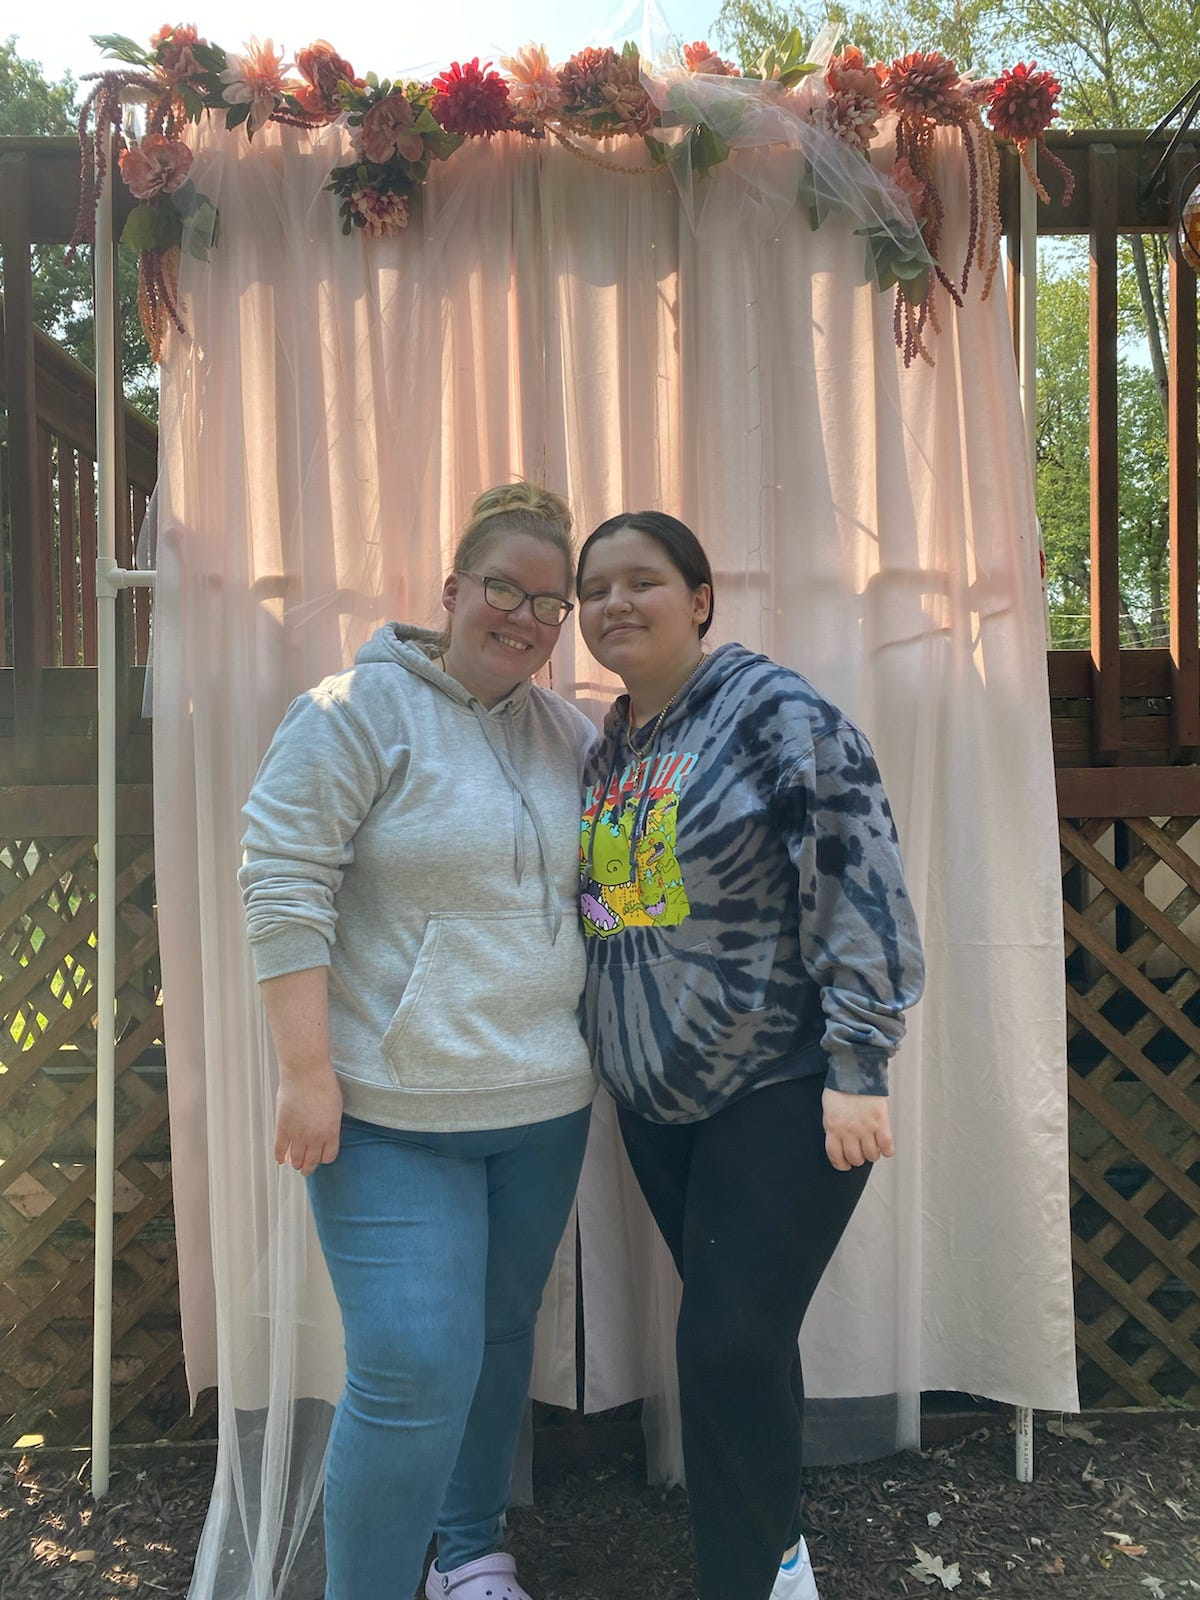 Stacy Rodriguez, 36, (Left) poses with her daughter Isabell Rodriguez, 15 (Right). Rodriguez has been on a journey to nurse her teenage daughter back to health after 13 surgeries have failed to remove and repair diseased tissue caused by her pilonidal disease. Rodriguez said she would put stimulus money towards the surgery costs.